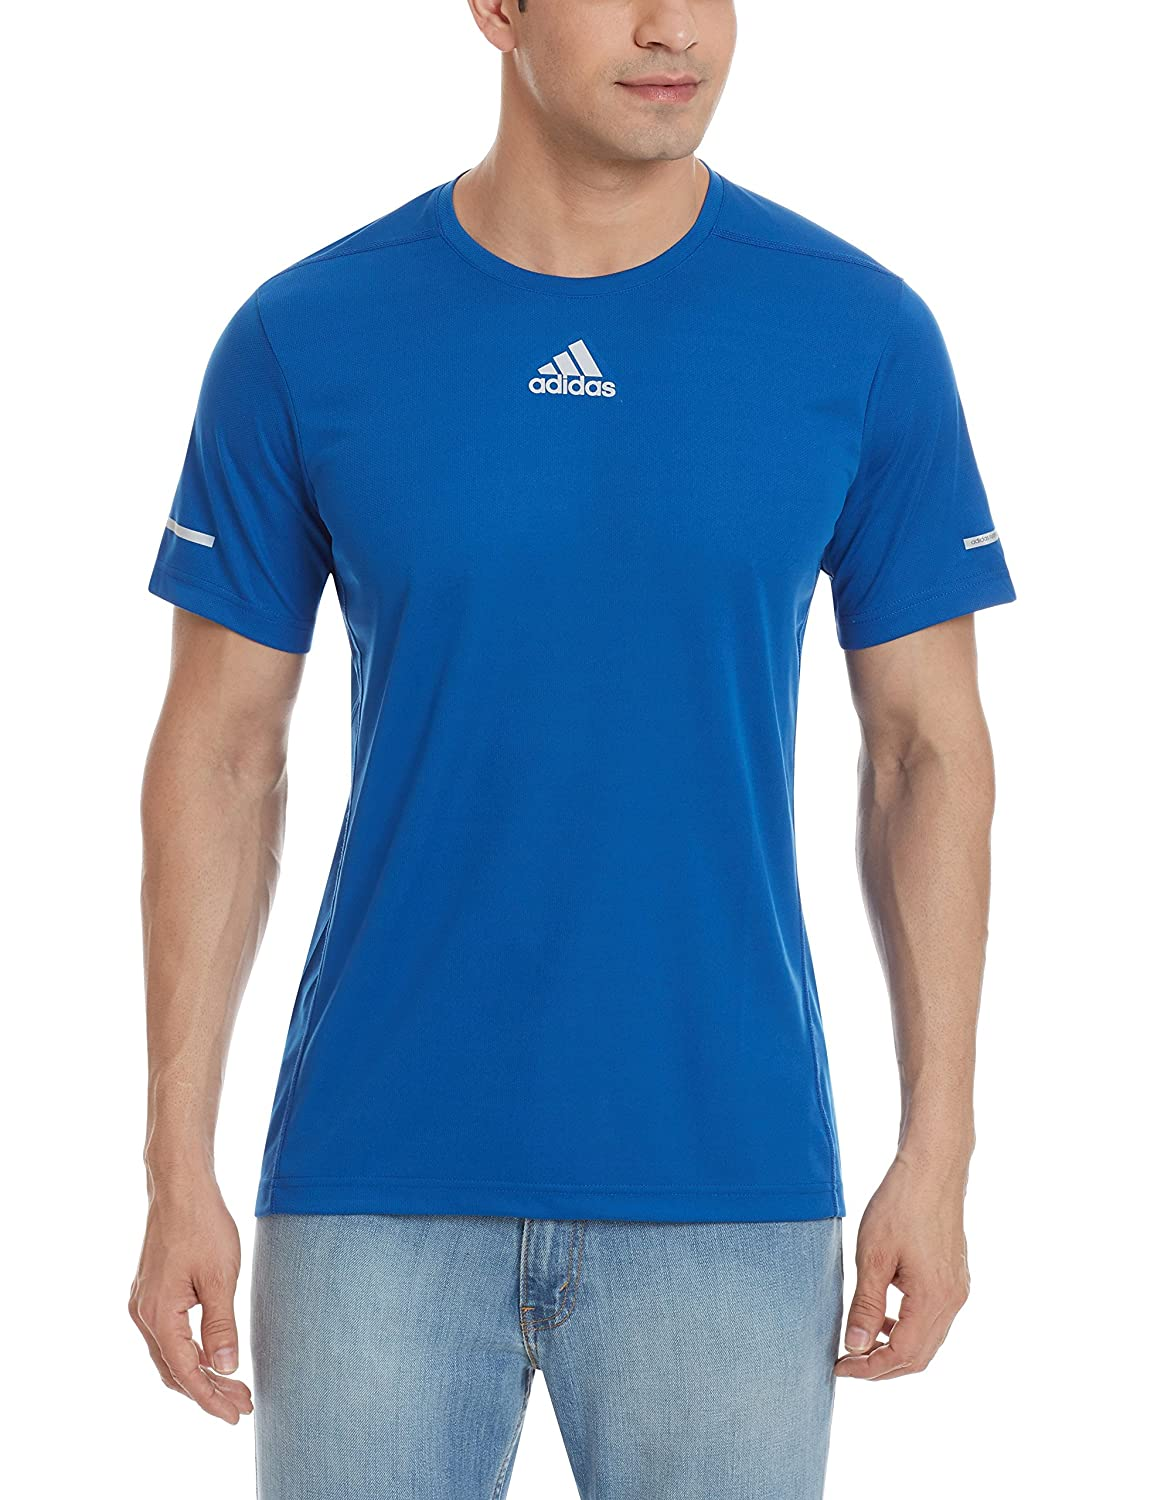 Minimum 40% Off On Addidas Men's Acessories By Amazon | adidas Men's TShirt @ Rs.687